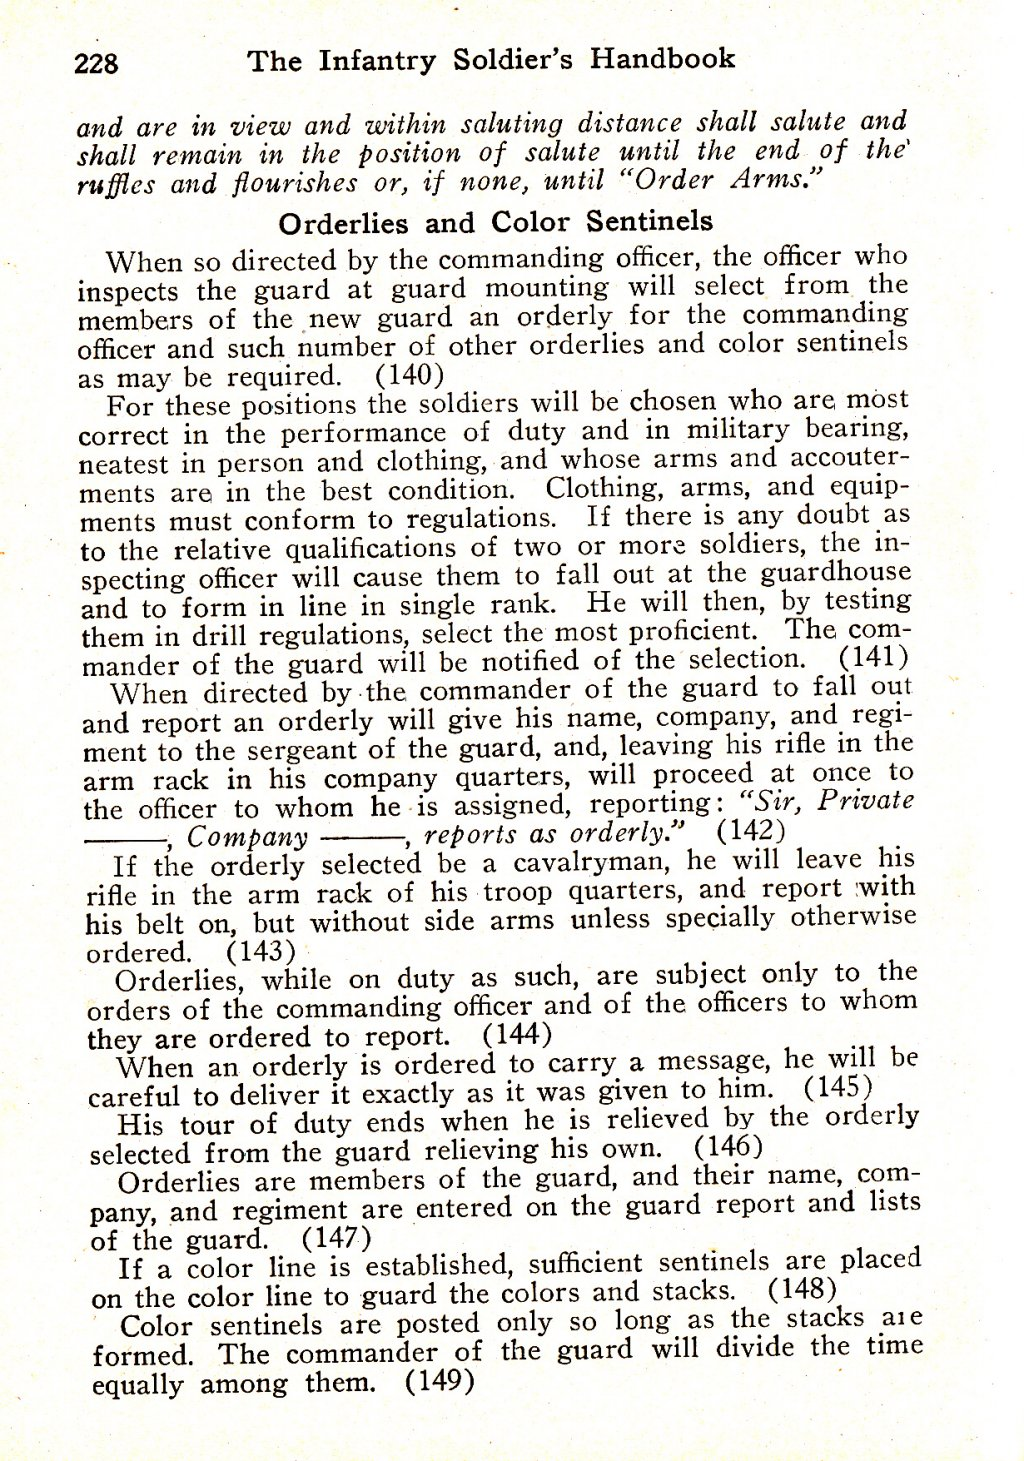 314th Infantry Regiment - Infantry Soldiers Handbook - Waldron - Page 228